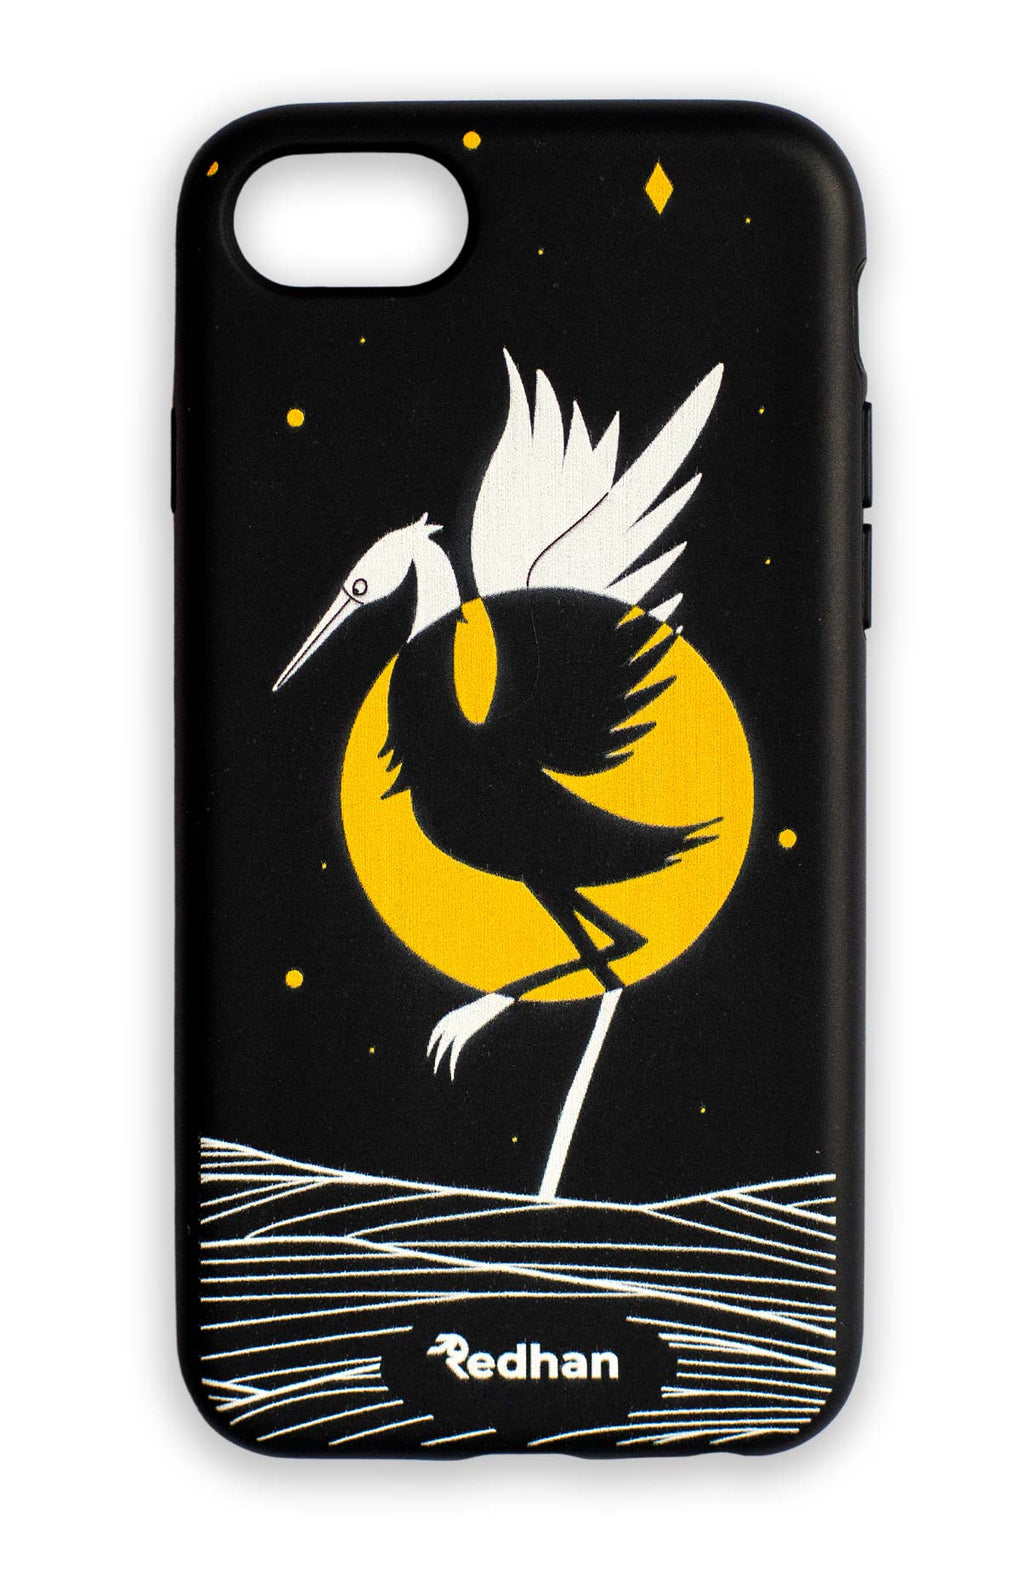 Eco Friendly iPhone 6 / 6S / 7 / 8 / SE (2020) Phone Case - Grey Heron in Pitch Black